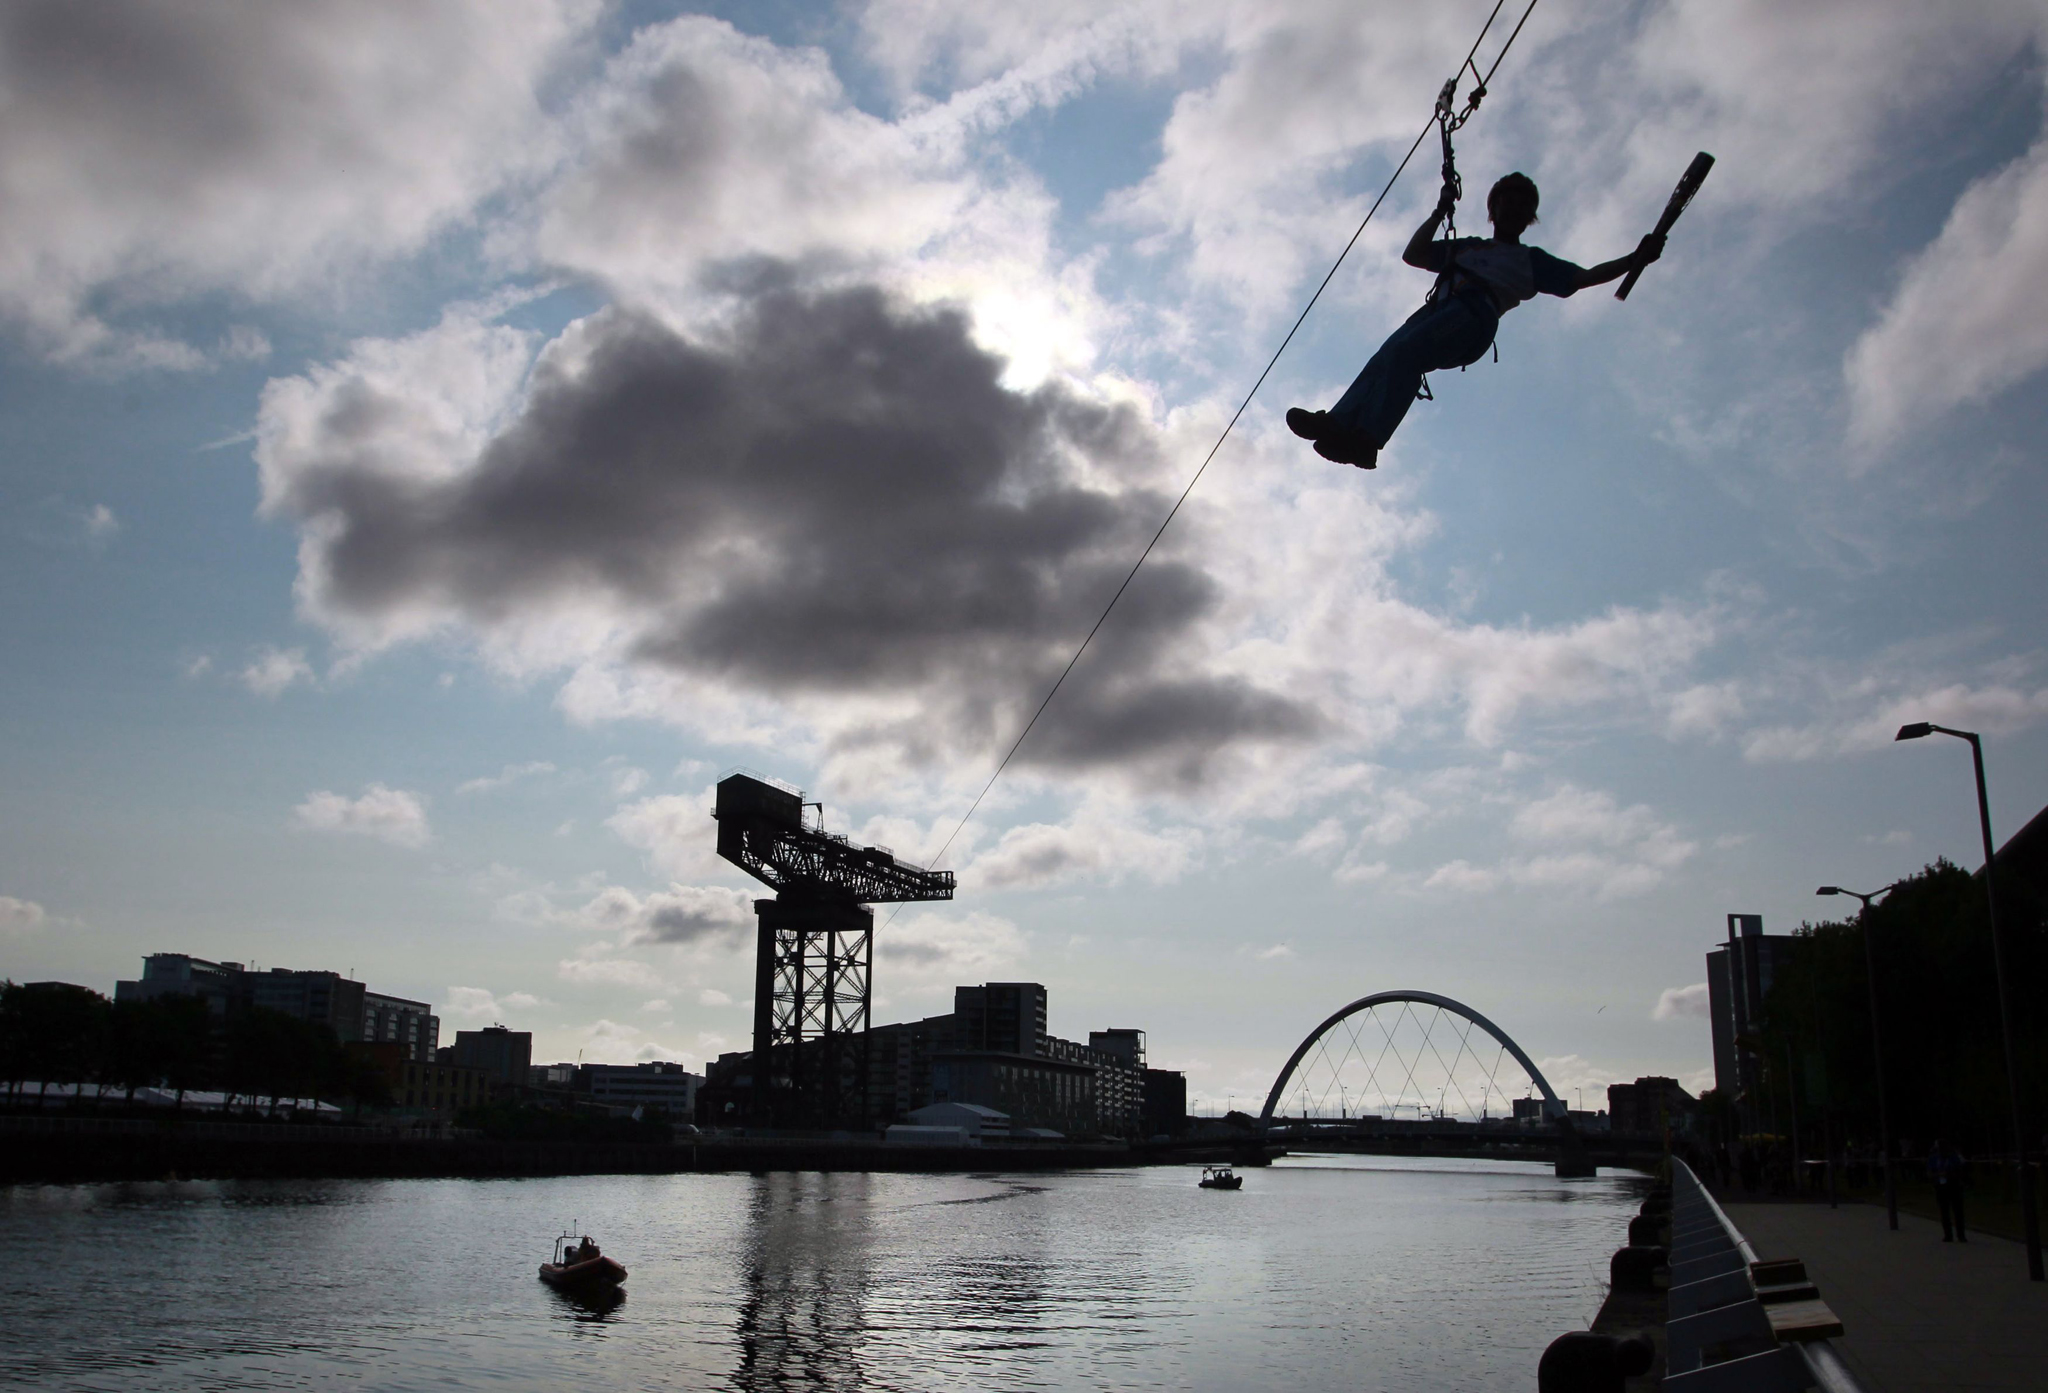 Day 38 of the Queen's Baton Relay in Scotland ...Handout photo from Glasgow 2014 Queen's Baton Relay of Batonbearer 010 Nina Saunders carrying the Glasgow 2014 Queen's Baton on a zip wire from Finnieston Crane in Glasgow. PRESS ASSOCIATION Photo. Picture date: Monday July 21, 2014. The batonbearer's name has been provided in good faith, however it has not been independently verified. Photo credit should read: David Cheskin for Glasgow 2014/PA Wire